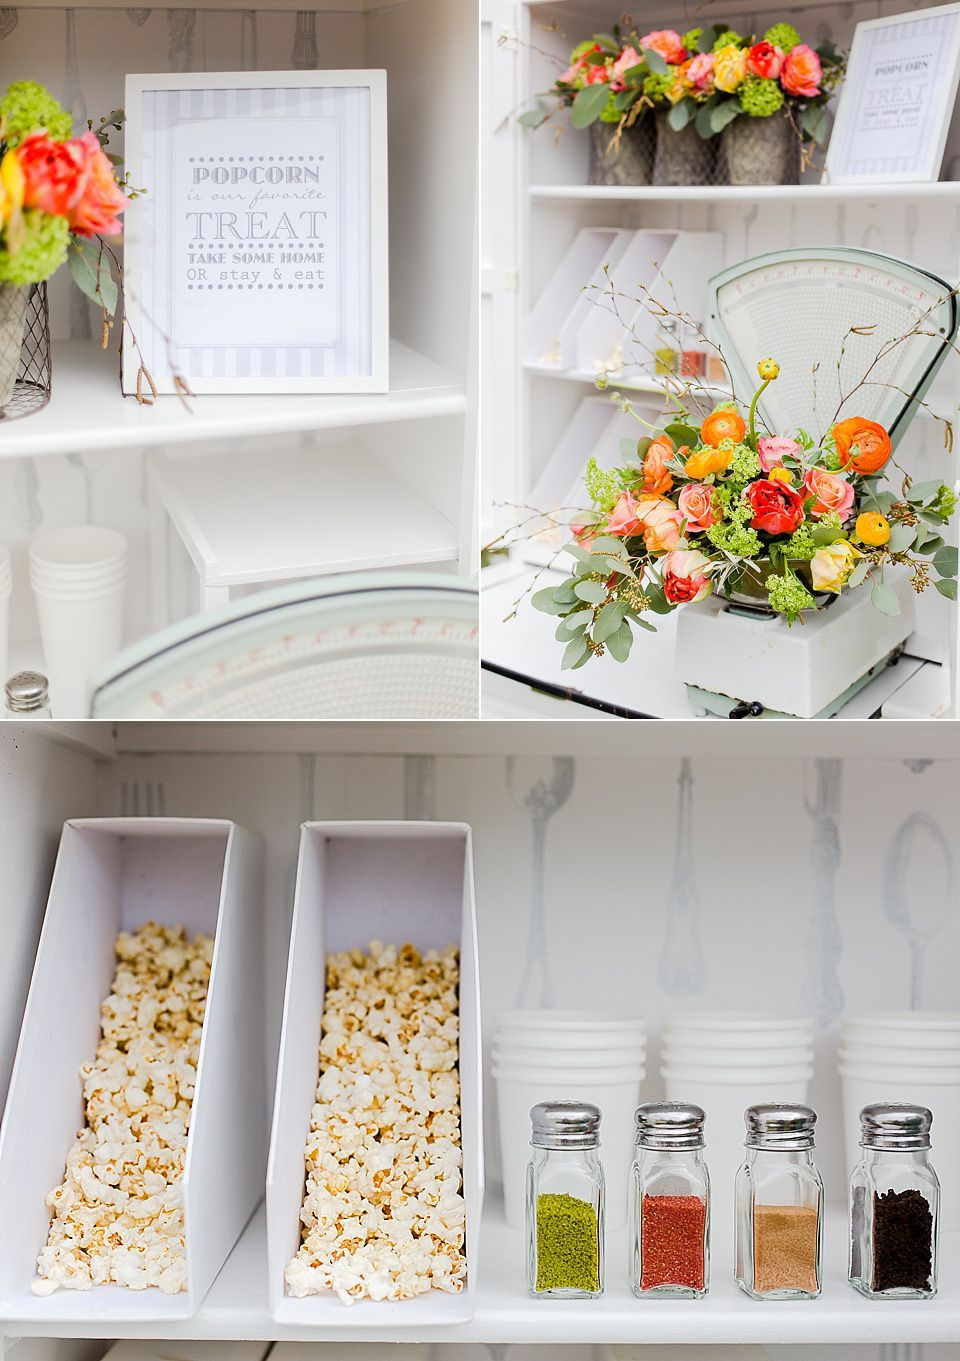 Wedding Catering Ideas: The Street Stalls Collection by Kalm Kitchen ...